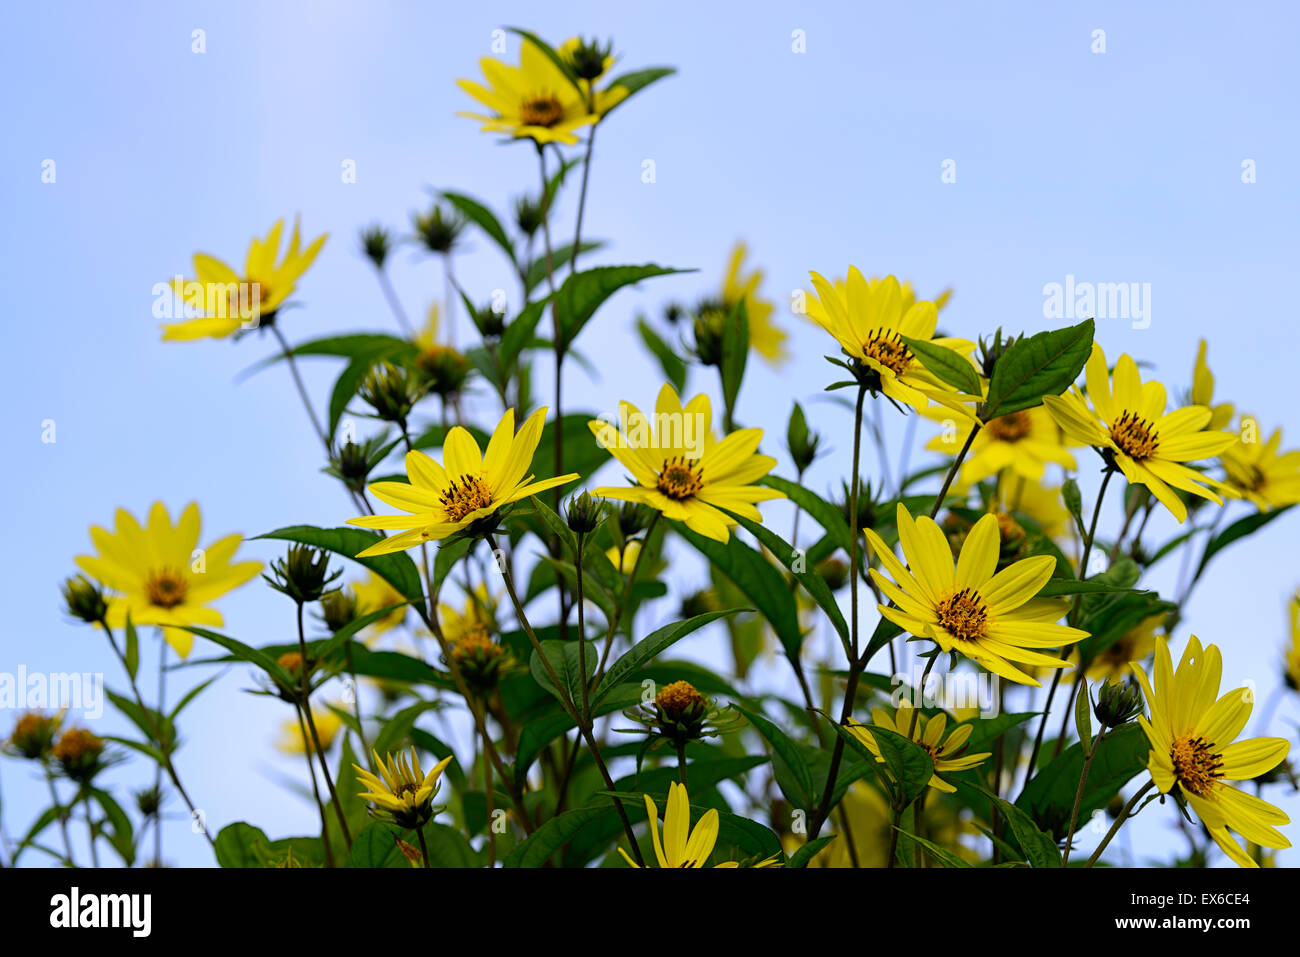 Helianthus lemon queen yellow flowers flower autumn flowering stock helianthus lemon queen yellow flowers flower autumn flowering sunflower tall herbaceous perennial mightylinksfo